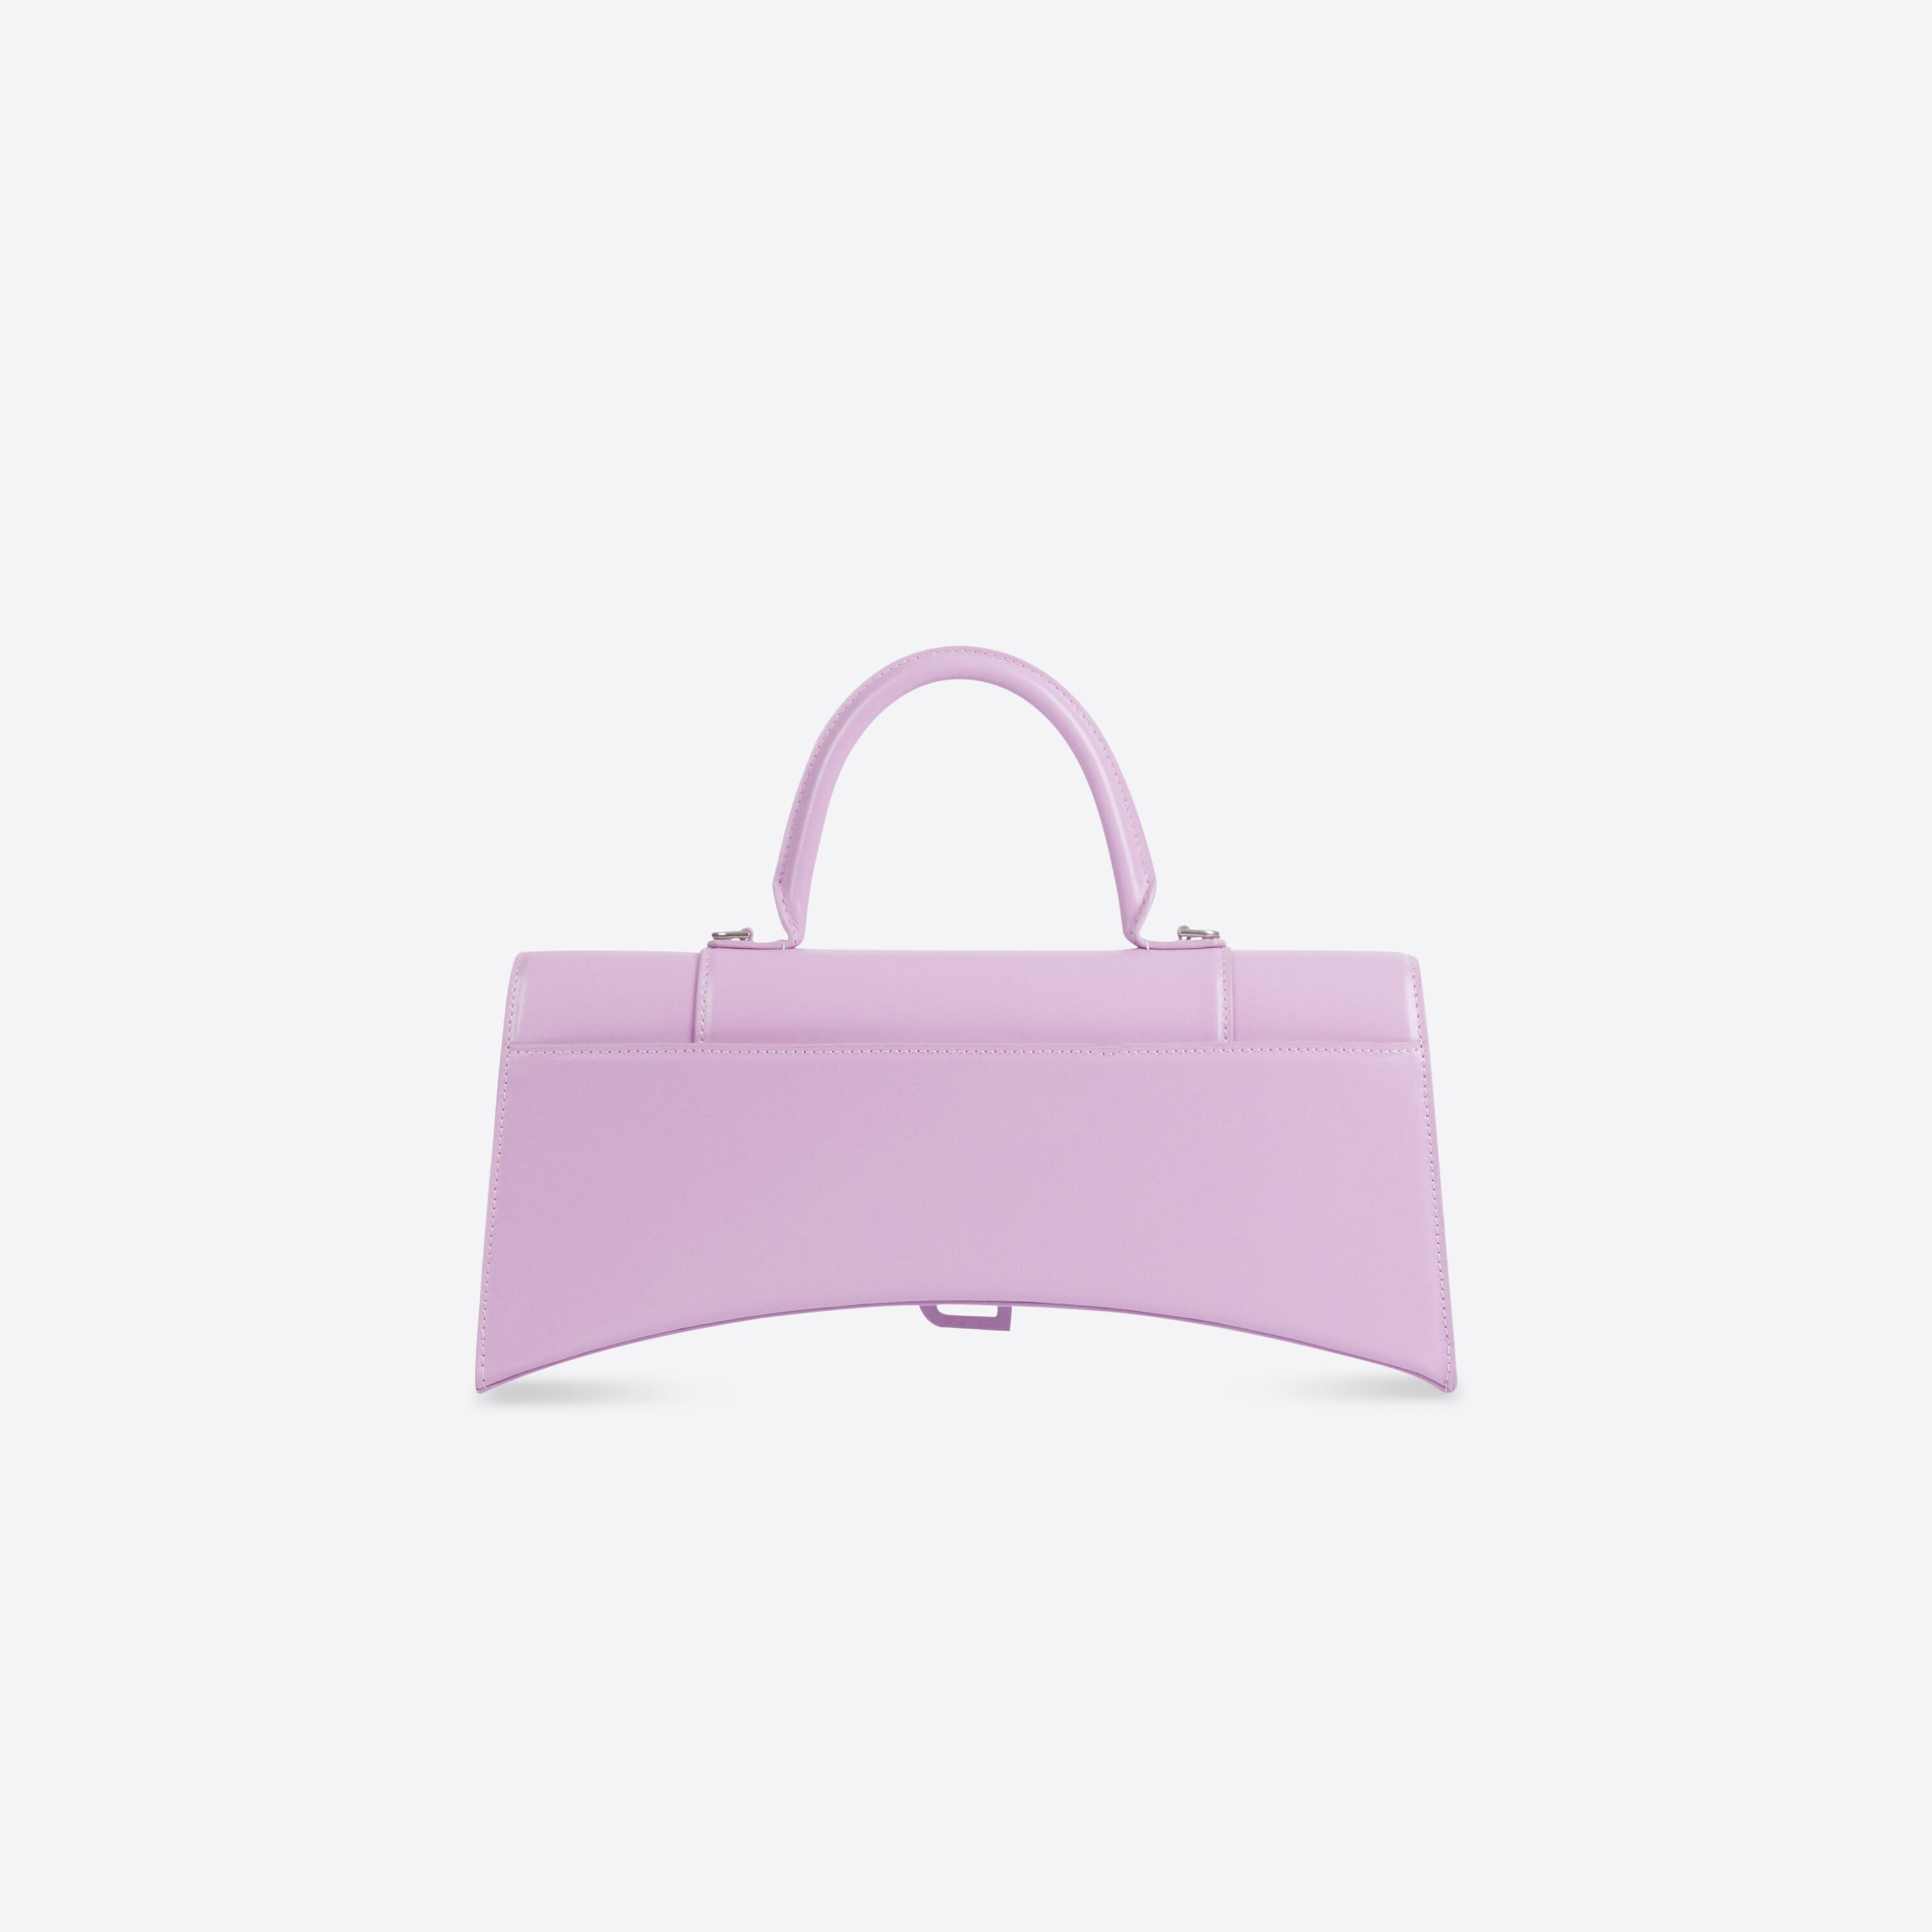 Hourglass Stretched Top Handle Bag 1